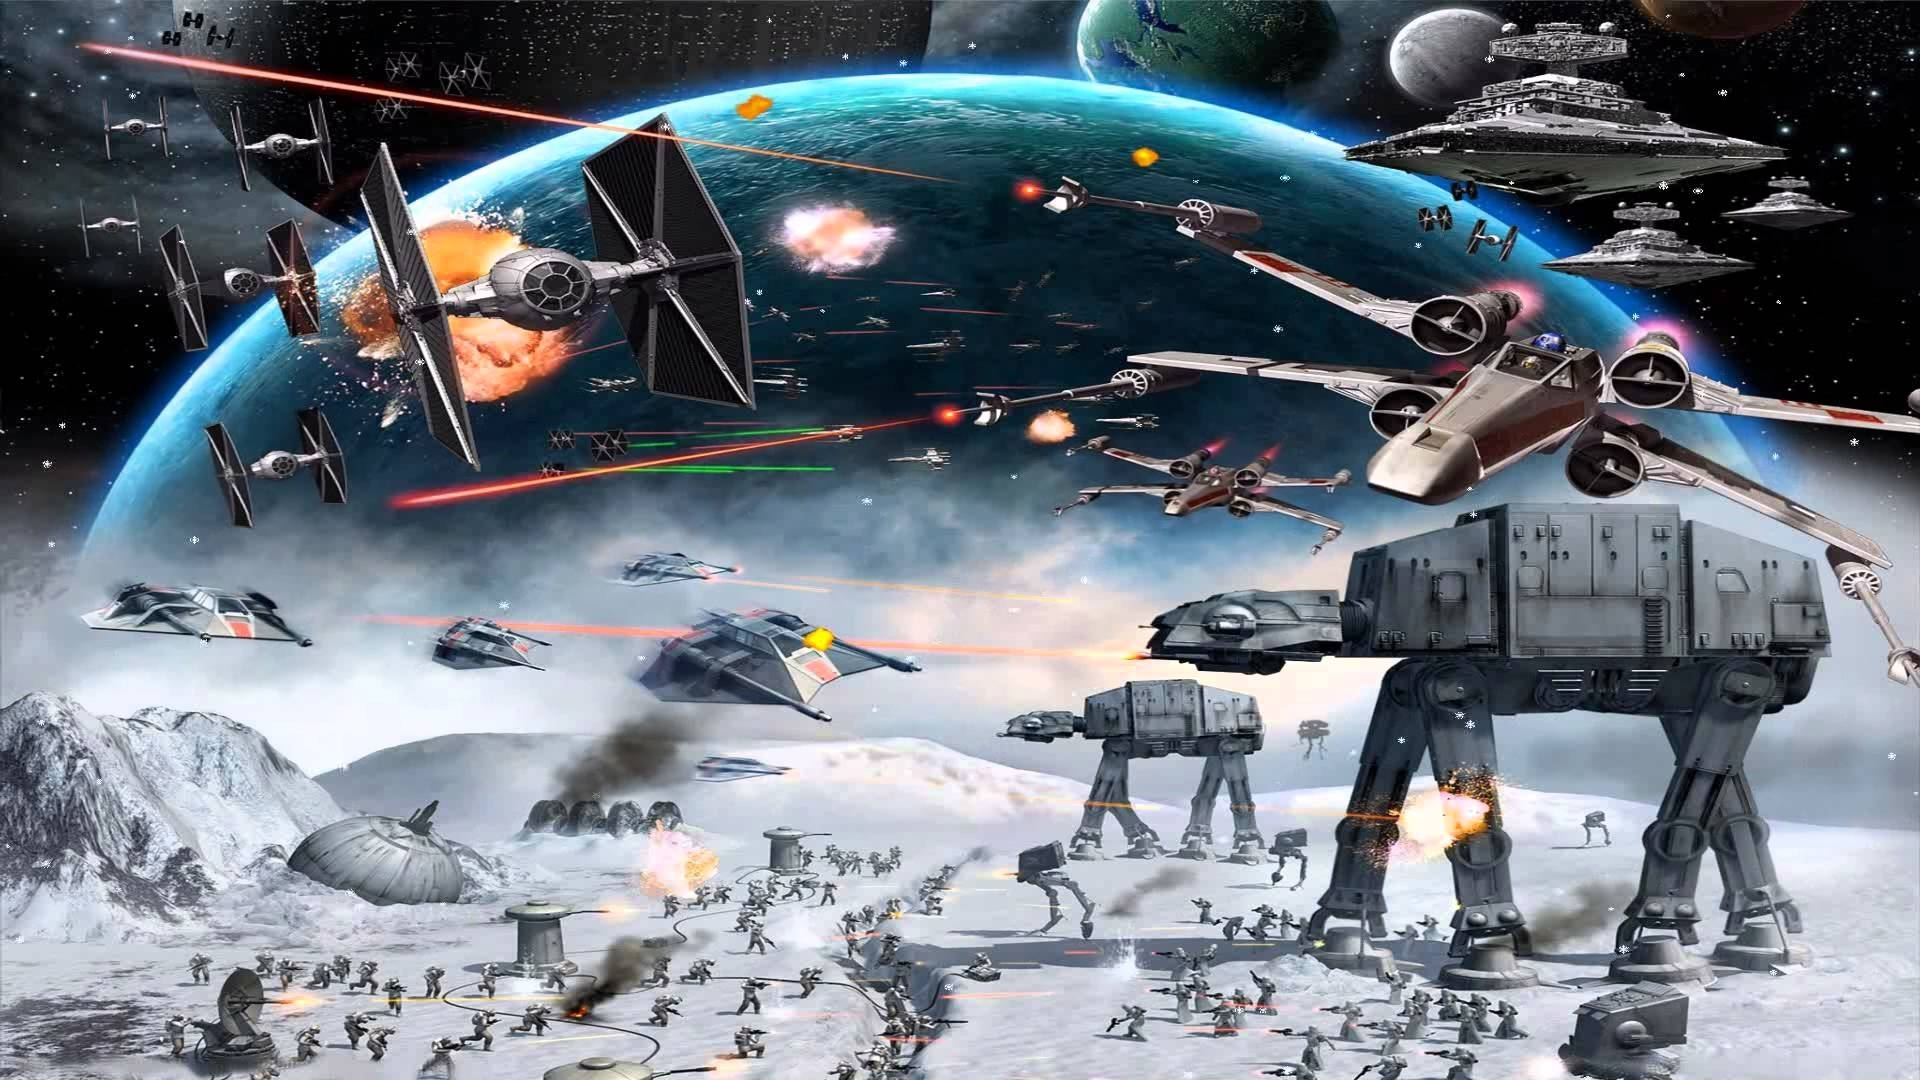 star wars animated screensaver http://www.screensavergift - youtube